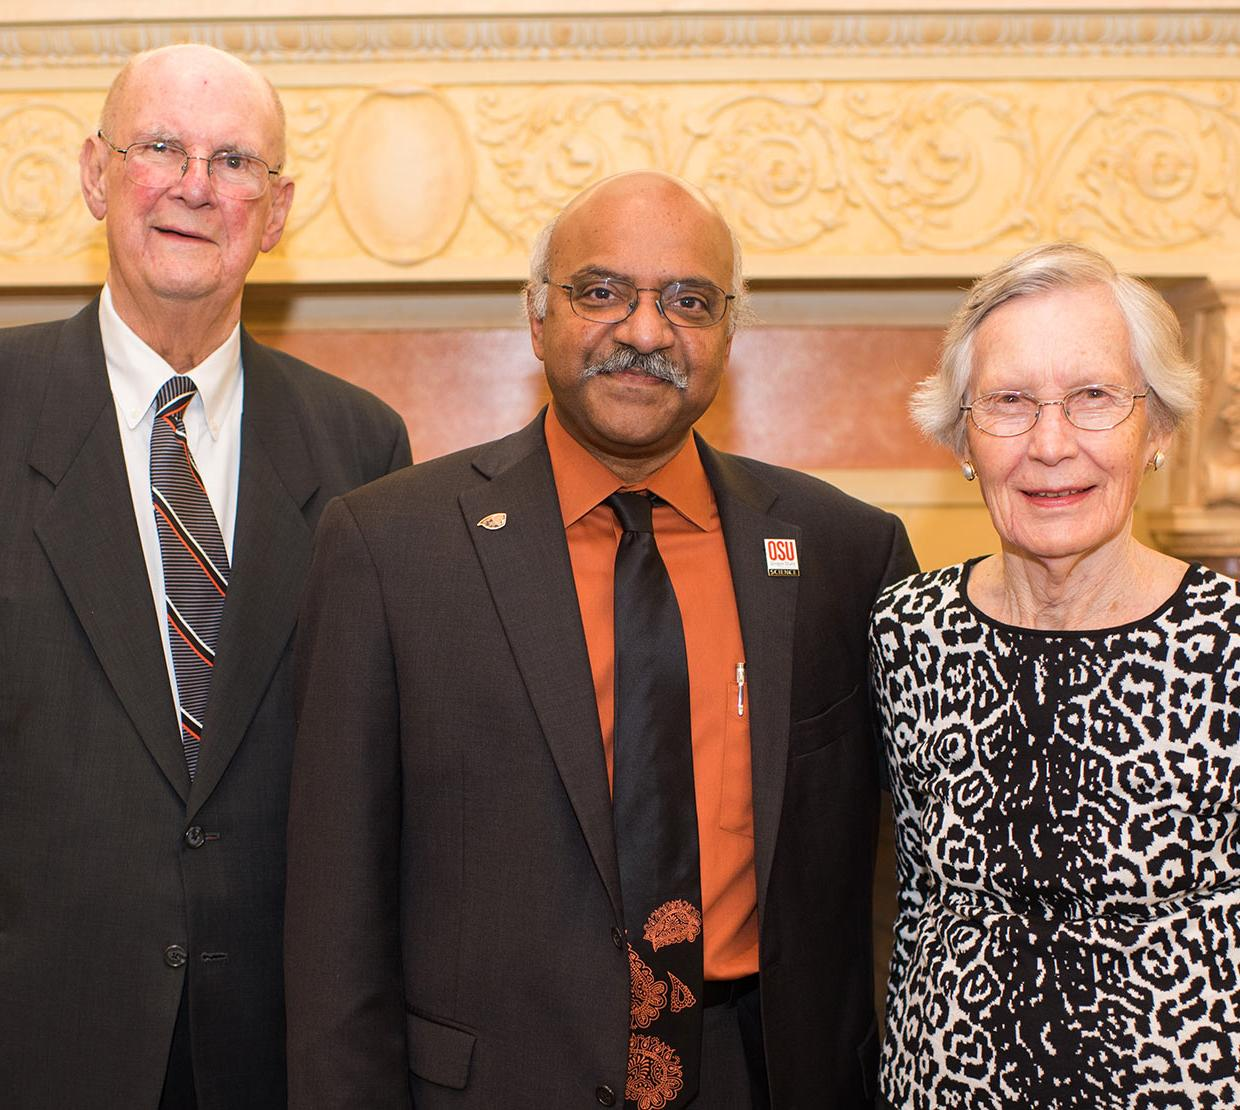 Ben and Elaine Whiteley with Sastry Pantula in front of decorative fireplace